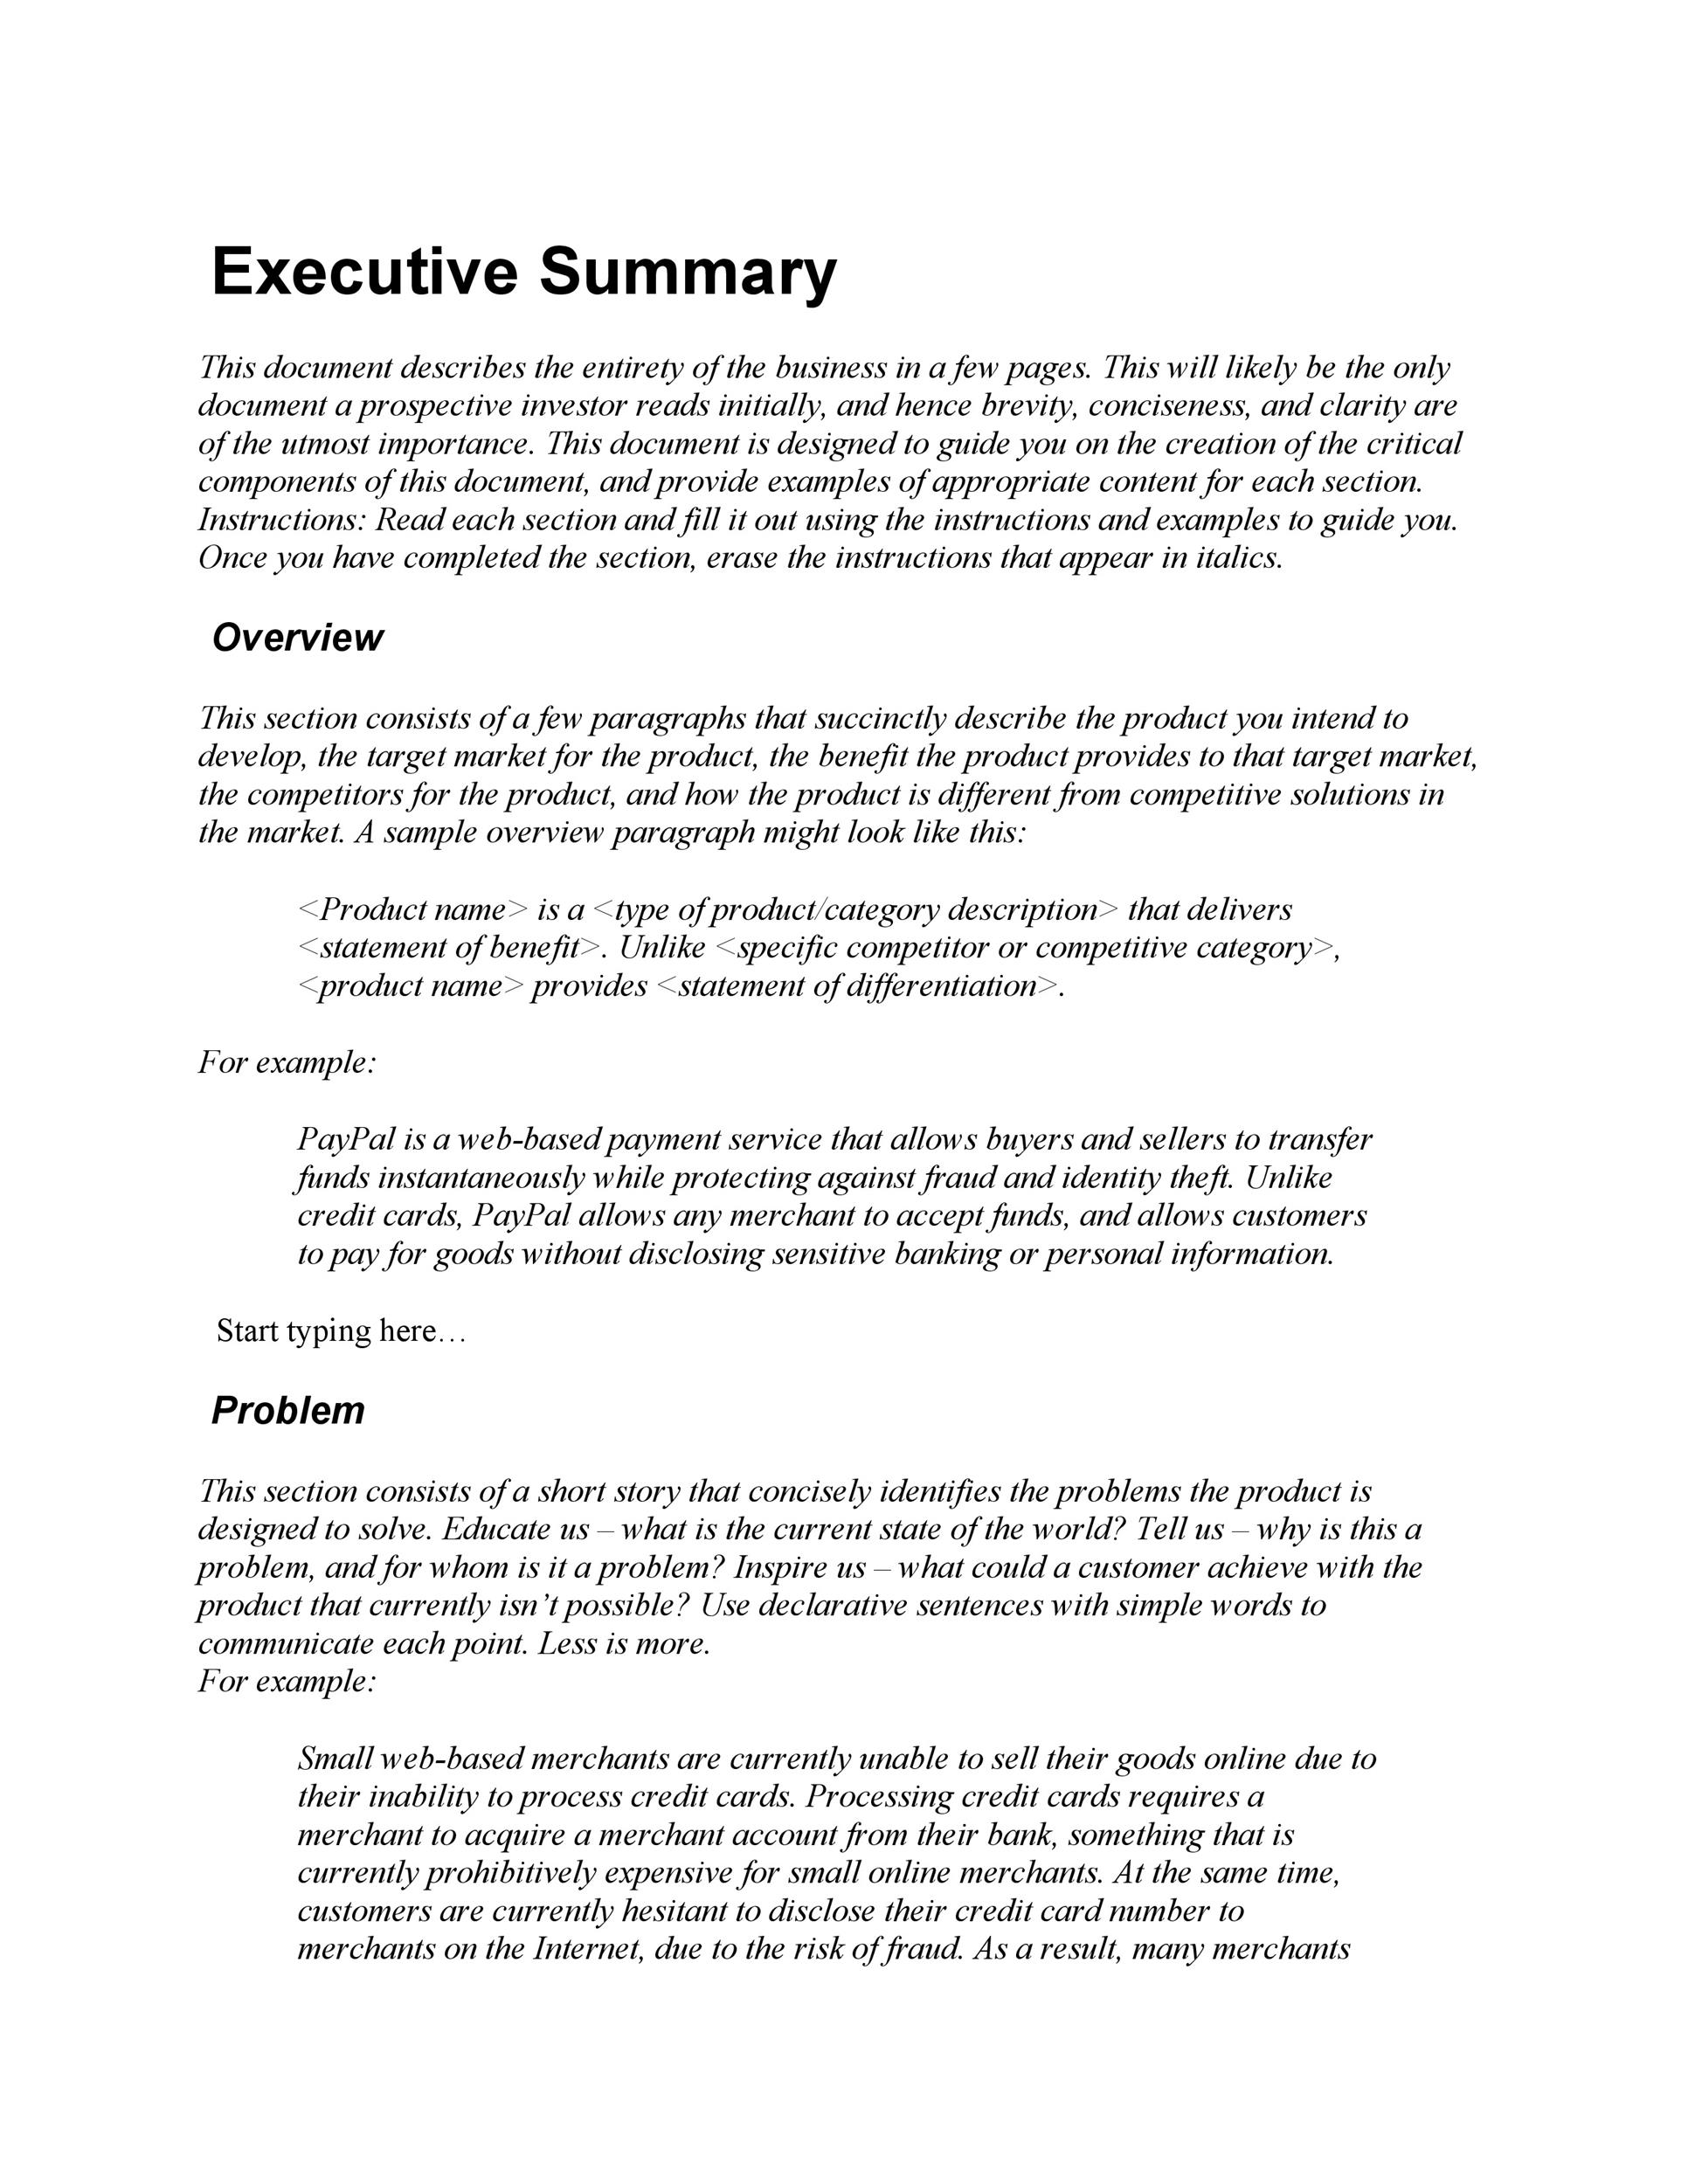 Example Of Executive Summary Of A Business Plan Vibiraem